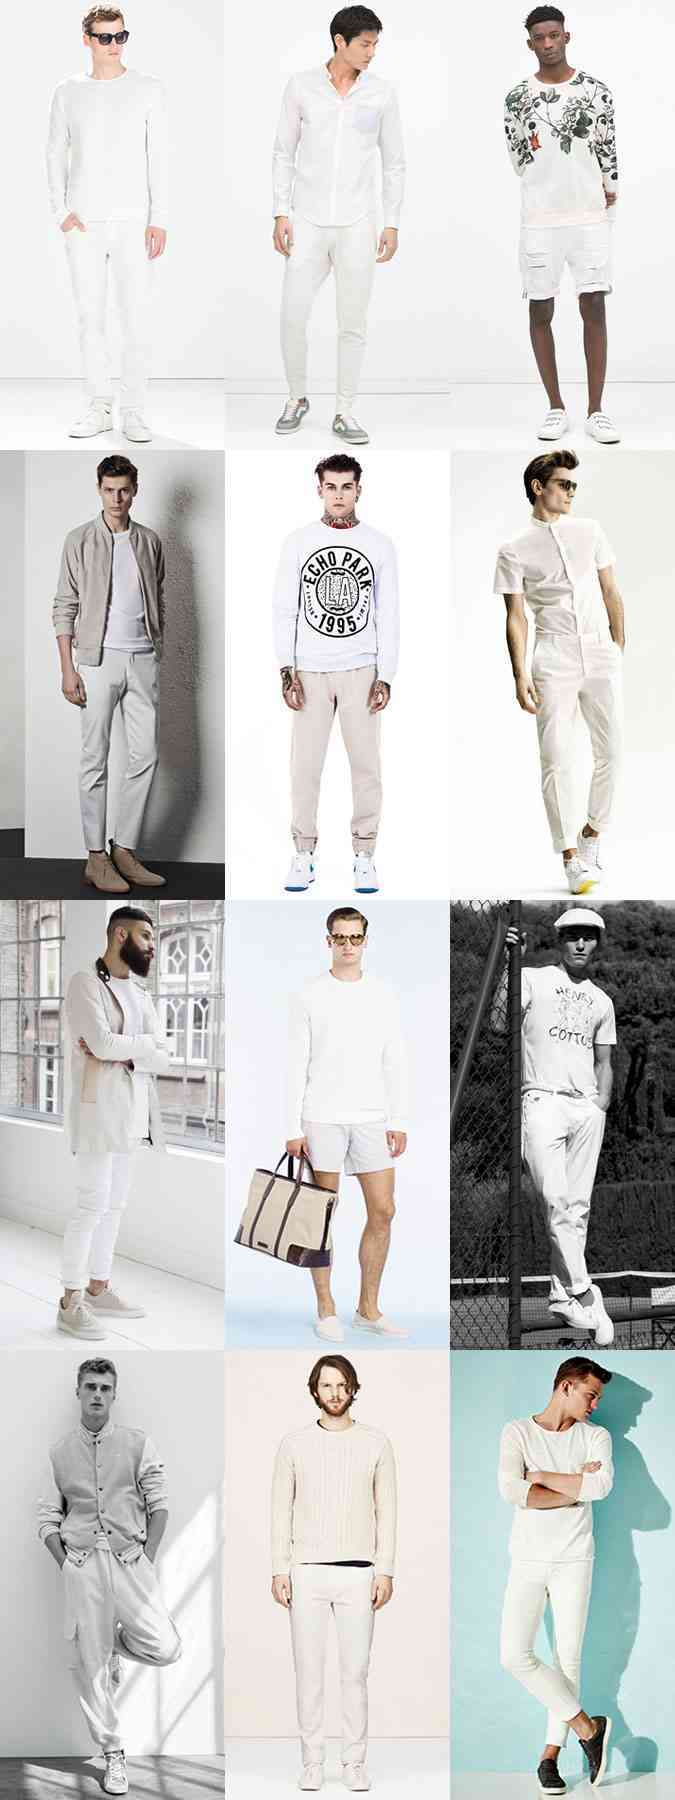 tinute all white 2015